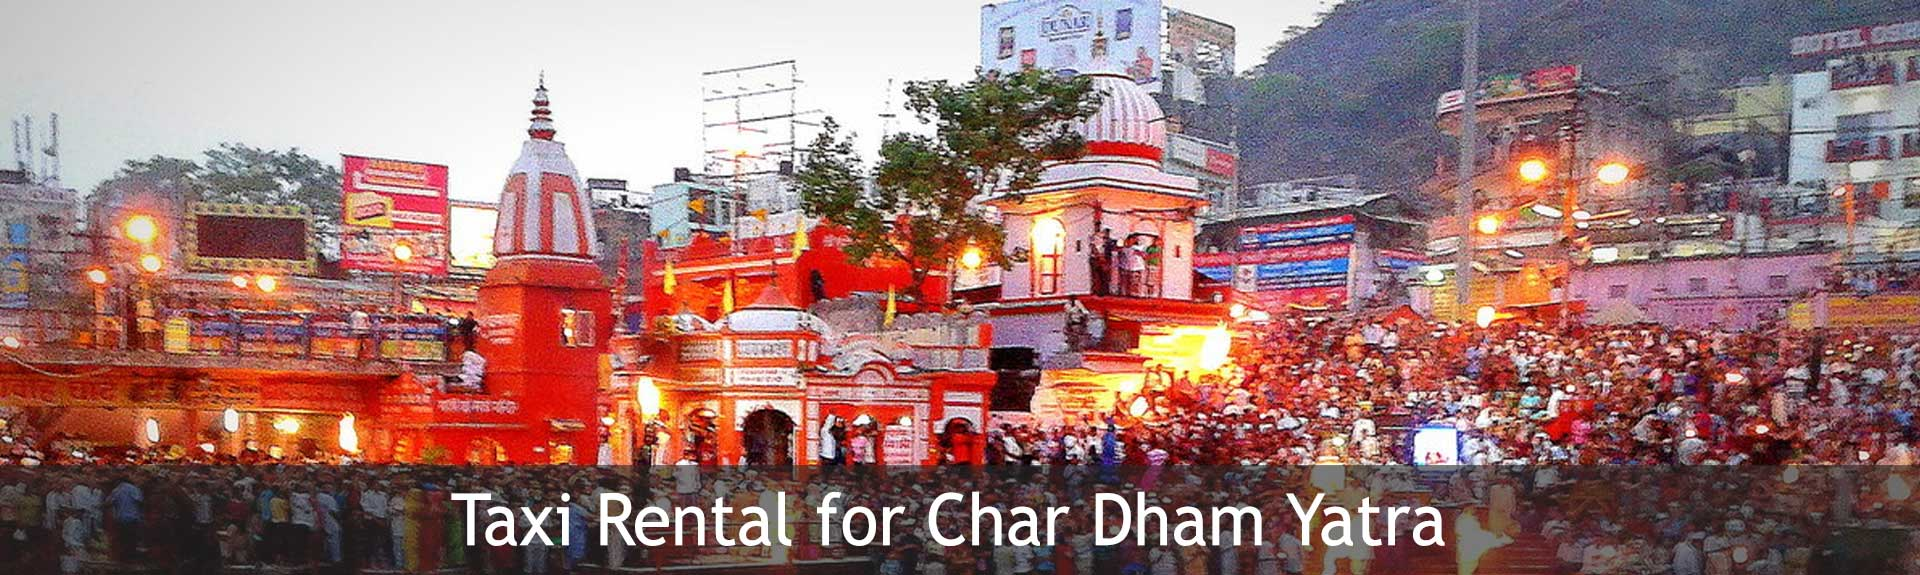 Taxi Rental for Char Dham Yatra